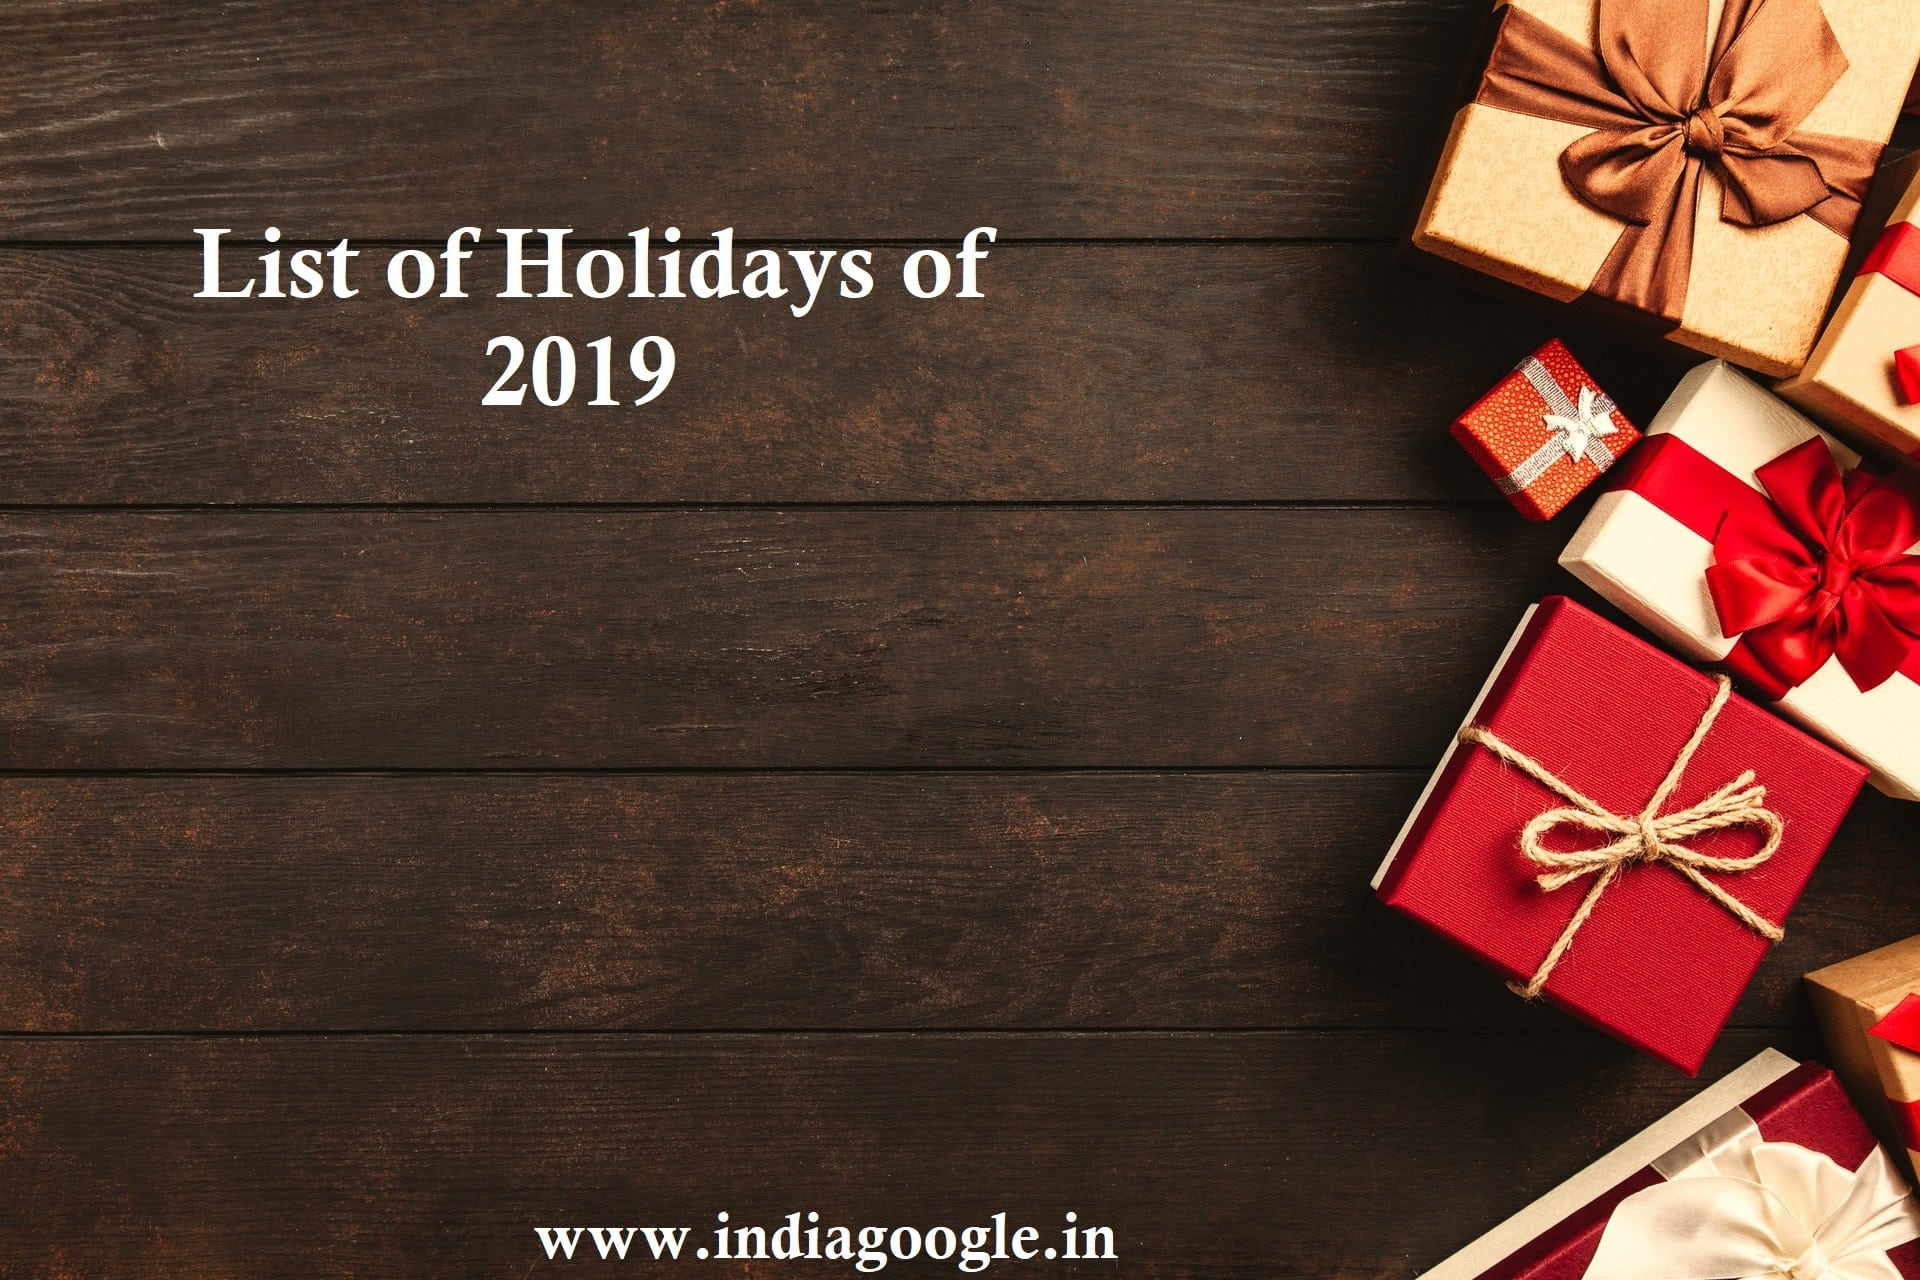 list of holidays | list of holidays 2019